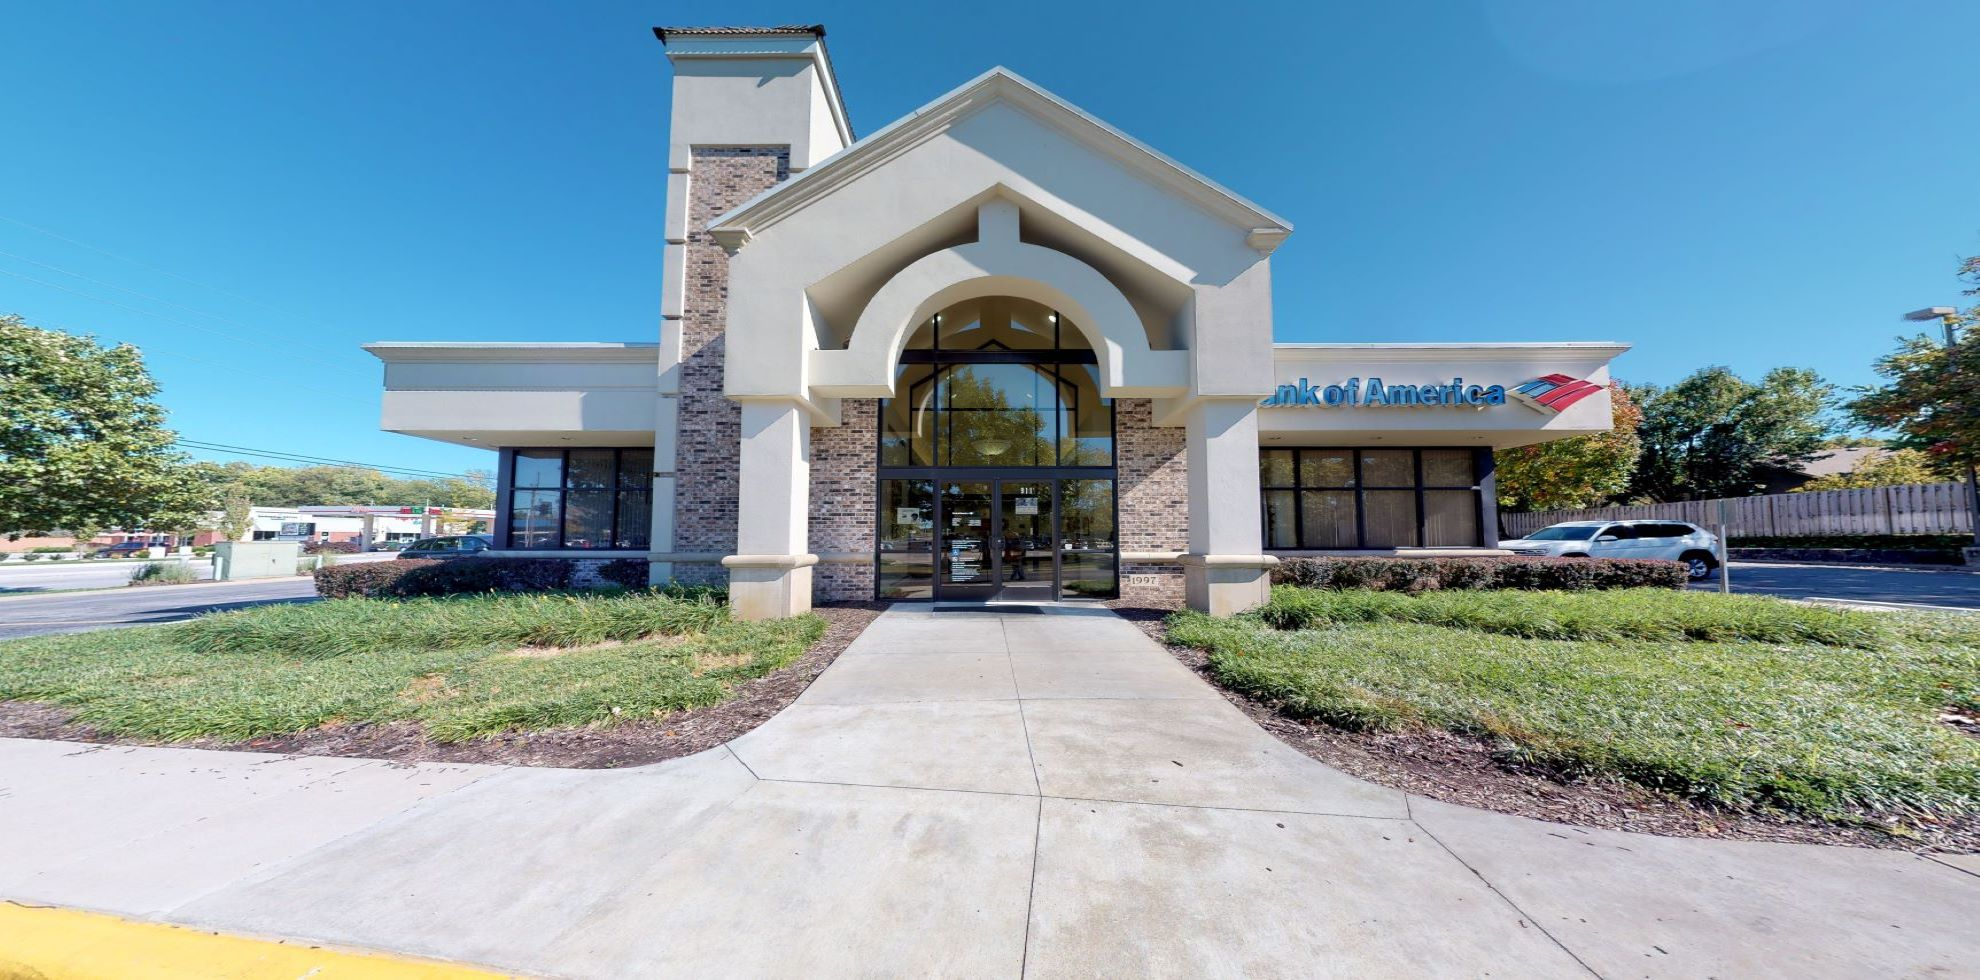 Bank of America financial center with drive-thru ATM   911 E Langsford Rd, Lees Summit, MO 64063